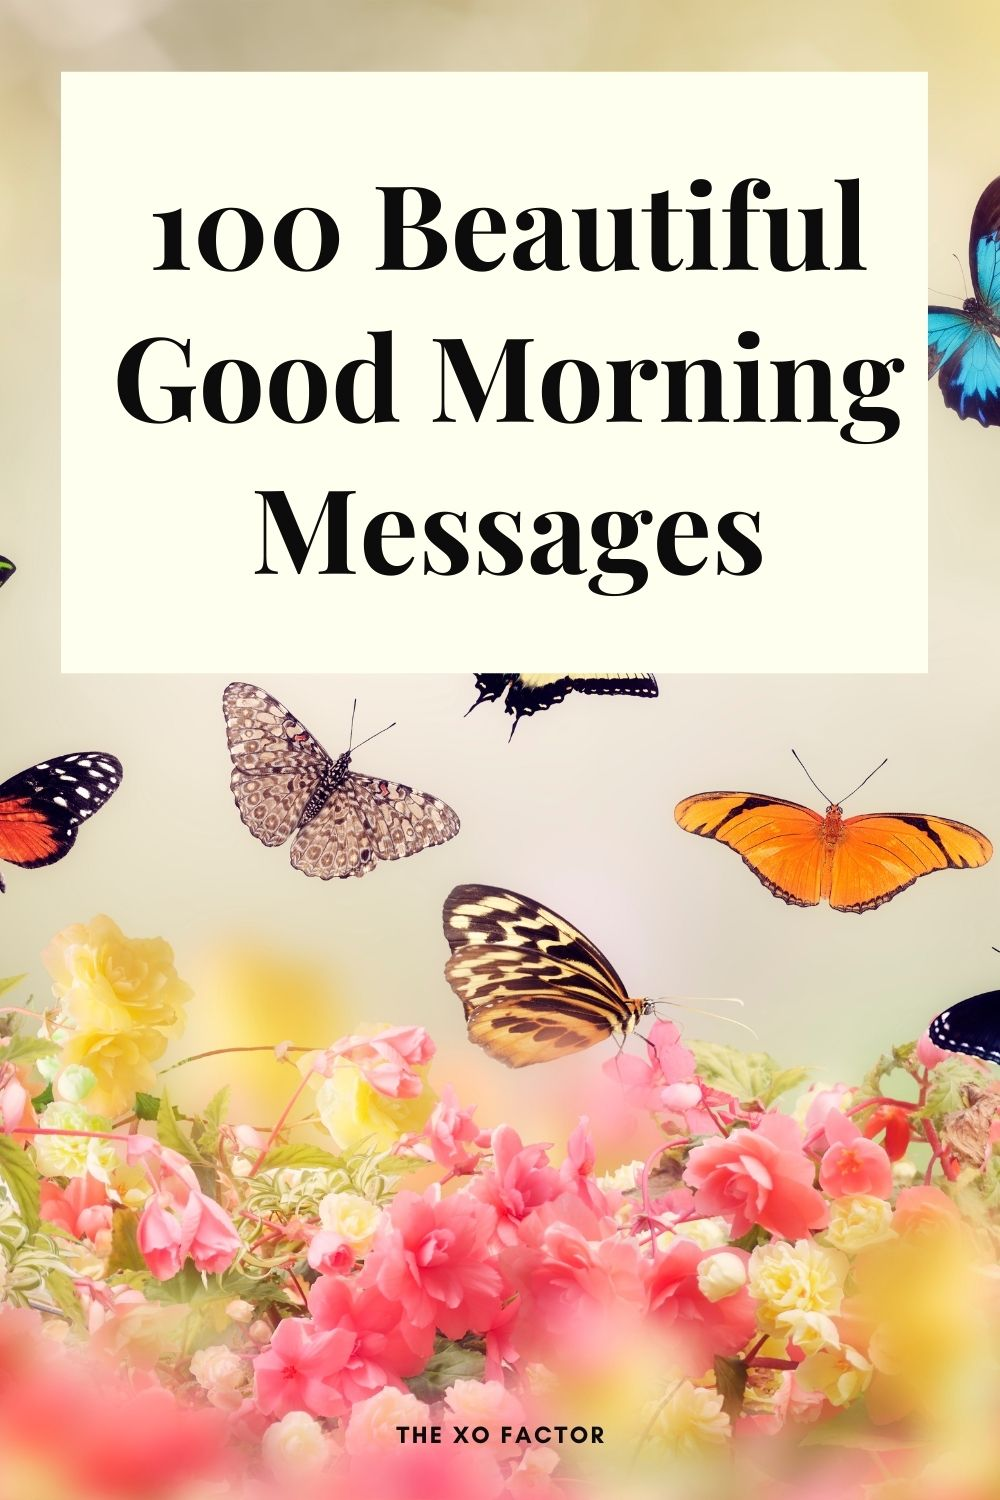 100 beautiful good morning messages